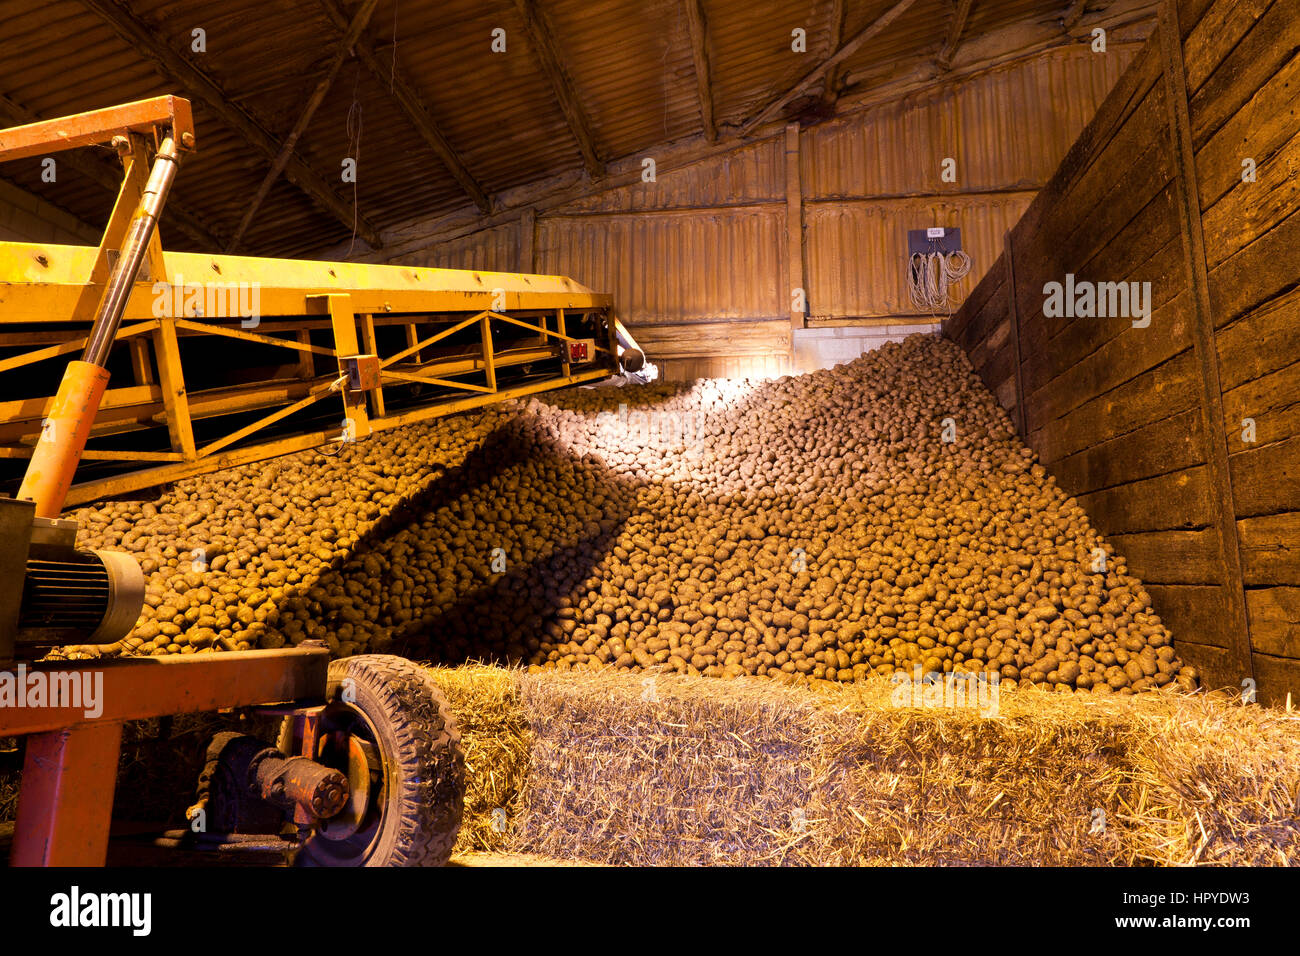 An elevator loading potatoes into a store - Stock Image